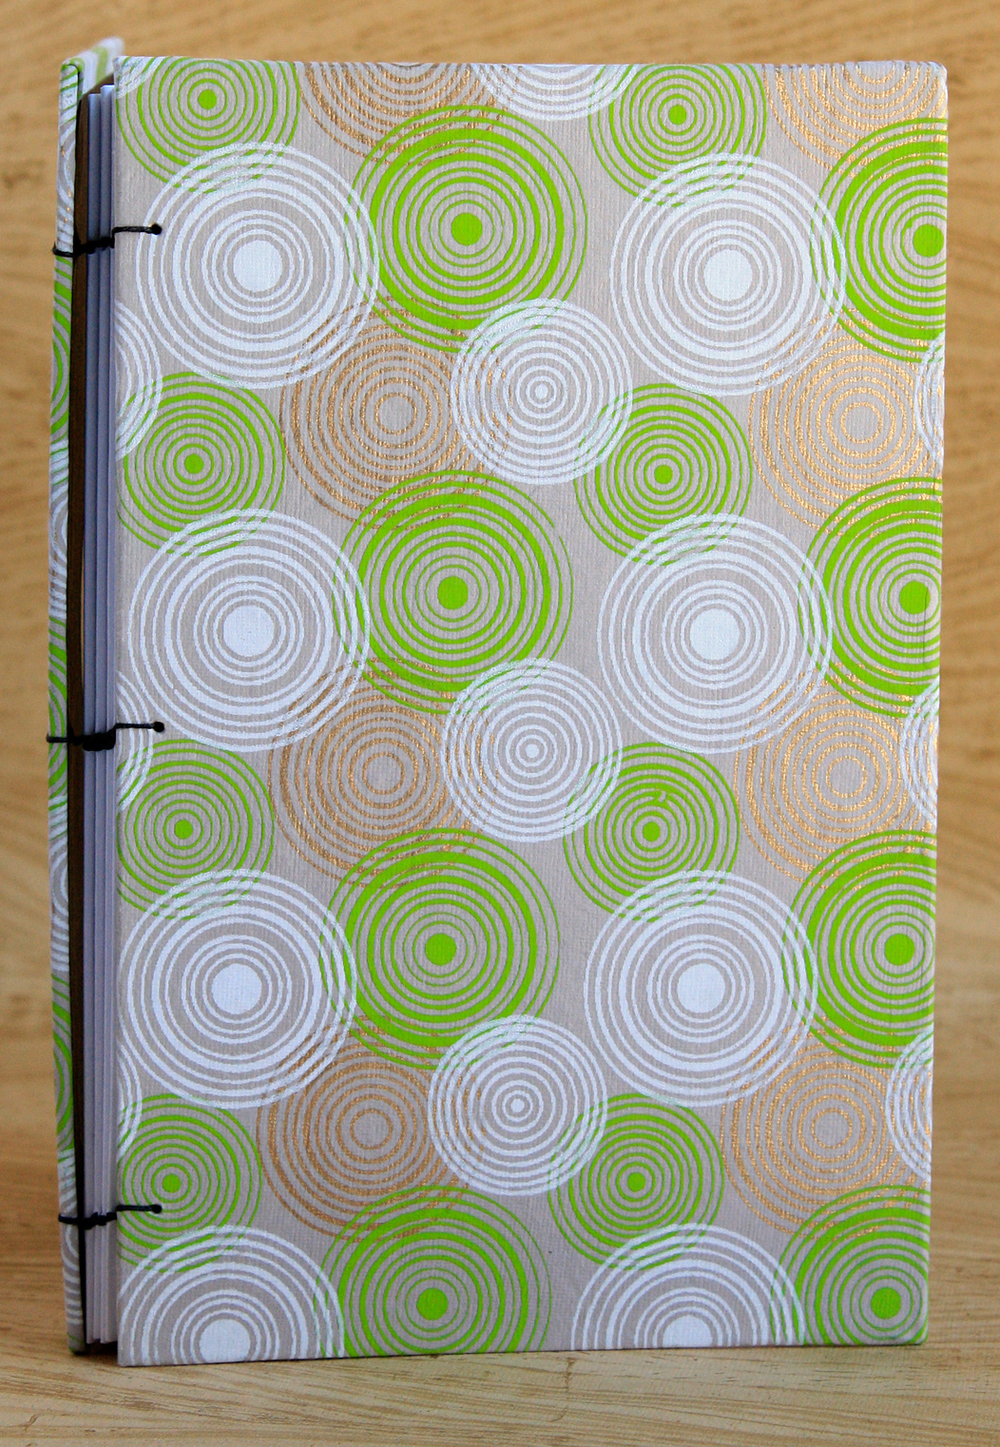 6x9-sketchbook-green-swirls-front.jpg